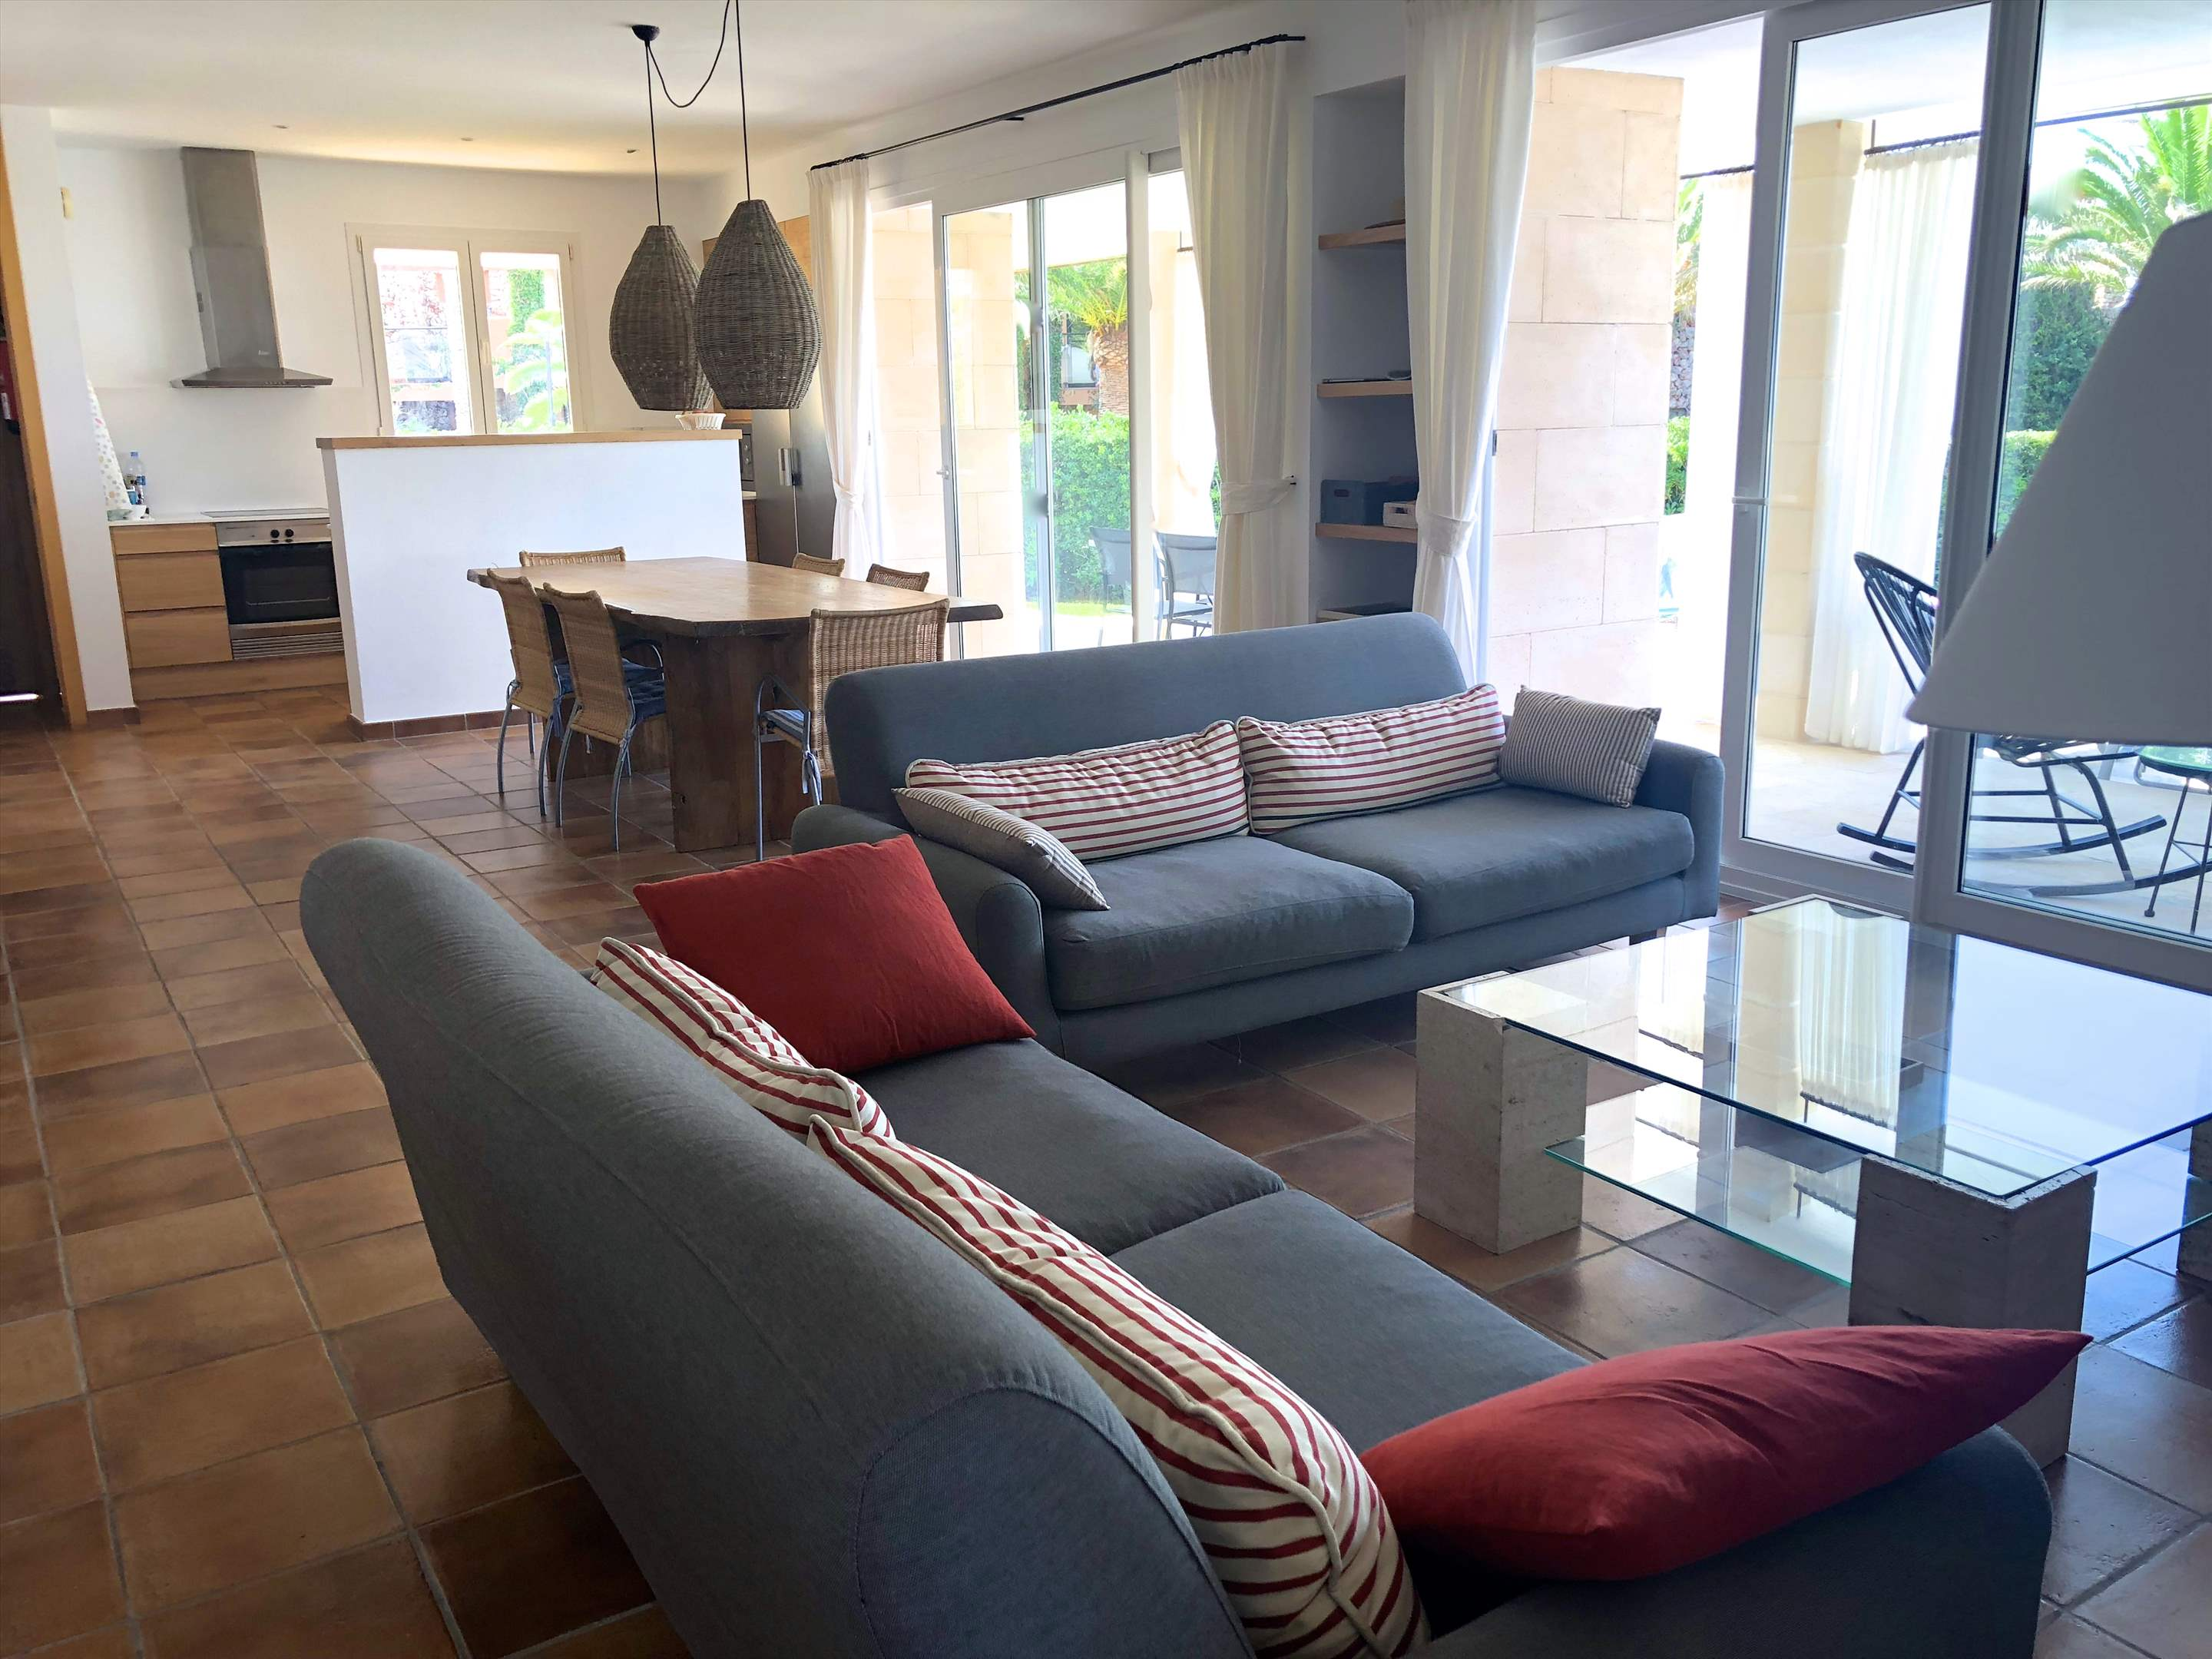 Villa Zapa, 3 bedroom villa in Mahon, San Luis & South East, Menorca Photo #9